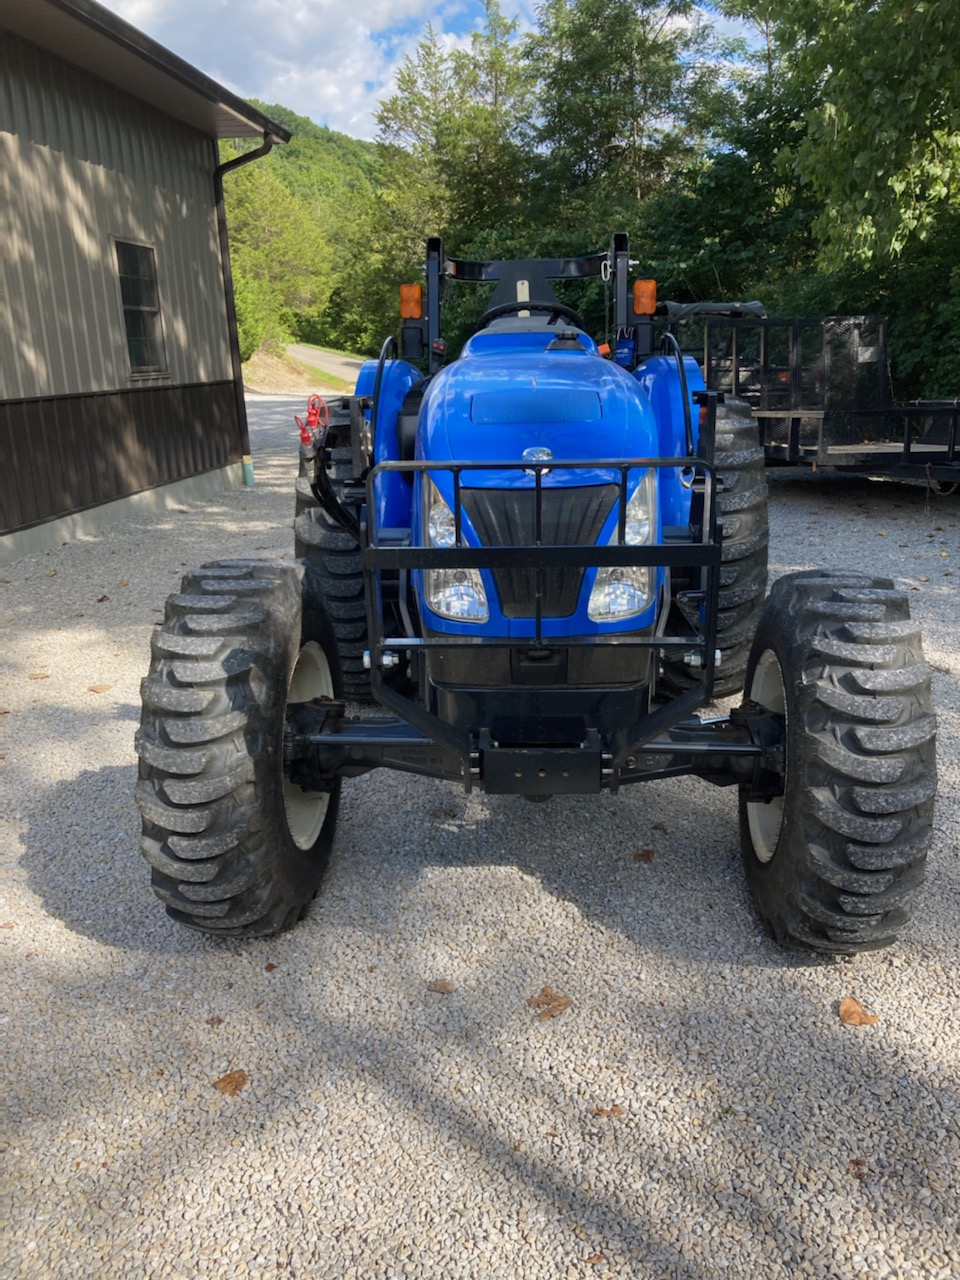 Tractor front